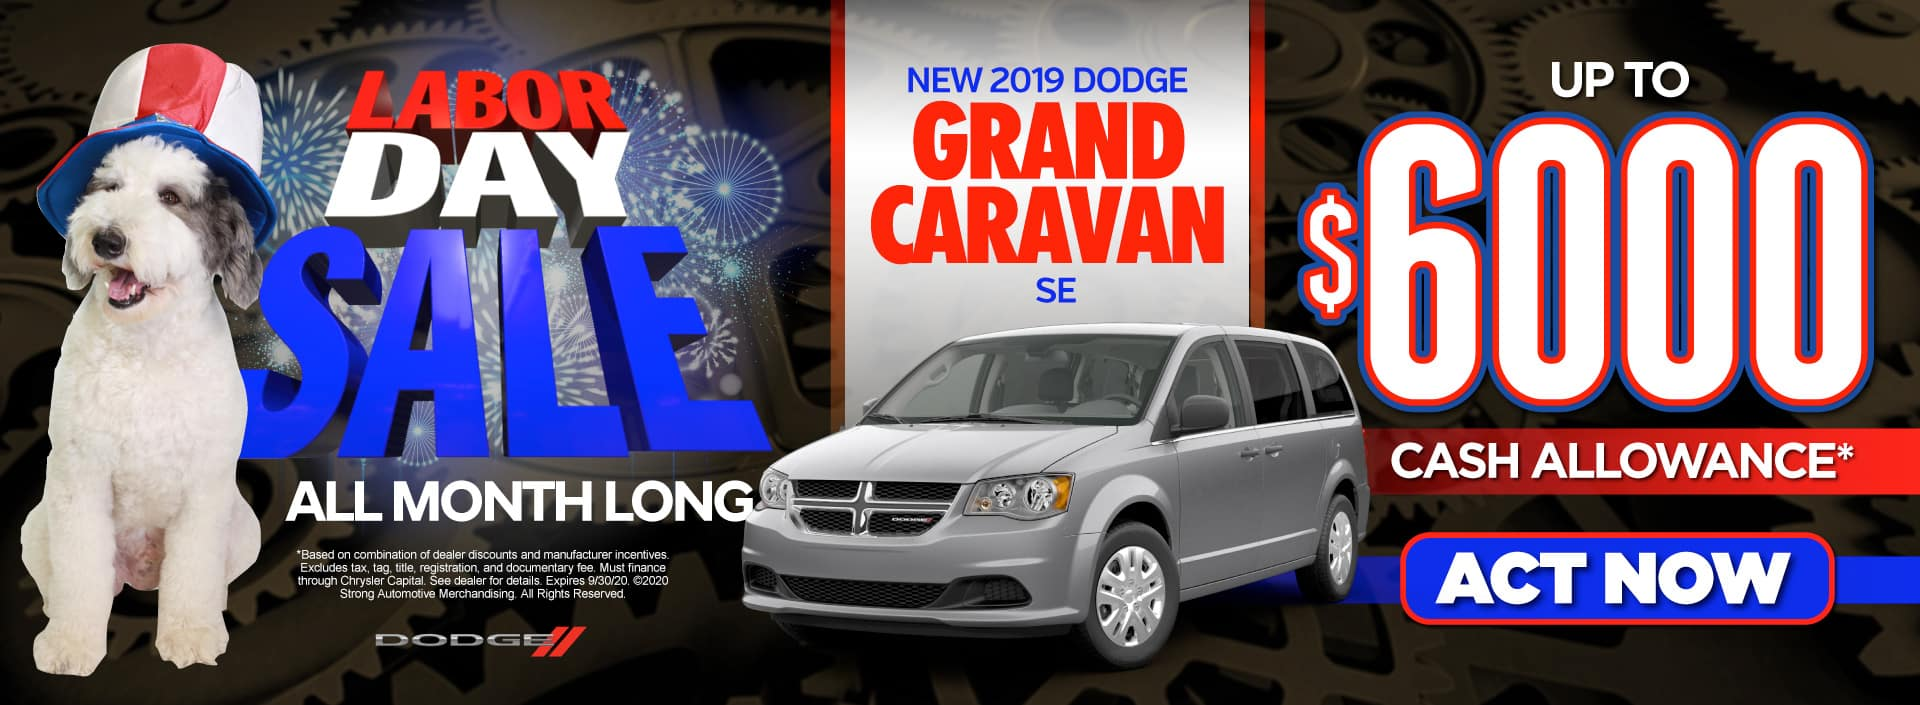 New 2019 Dodge Grand Caravan - Up to $6000 in savings - Act Now